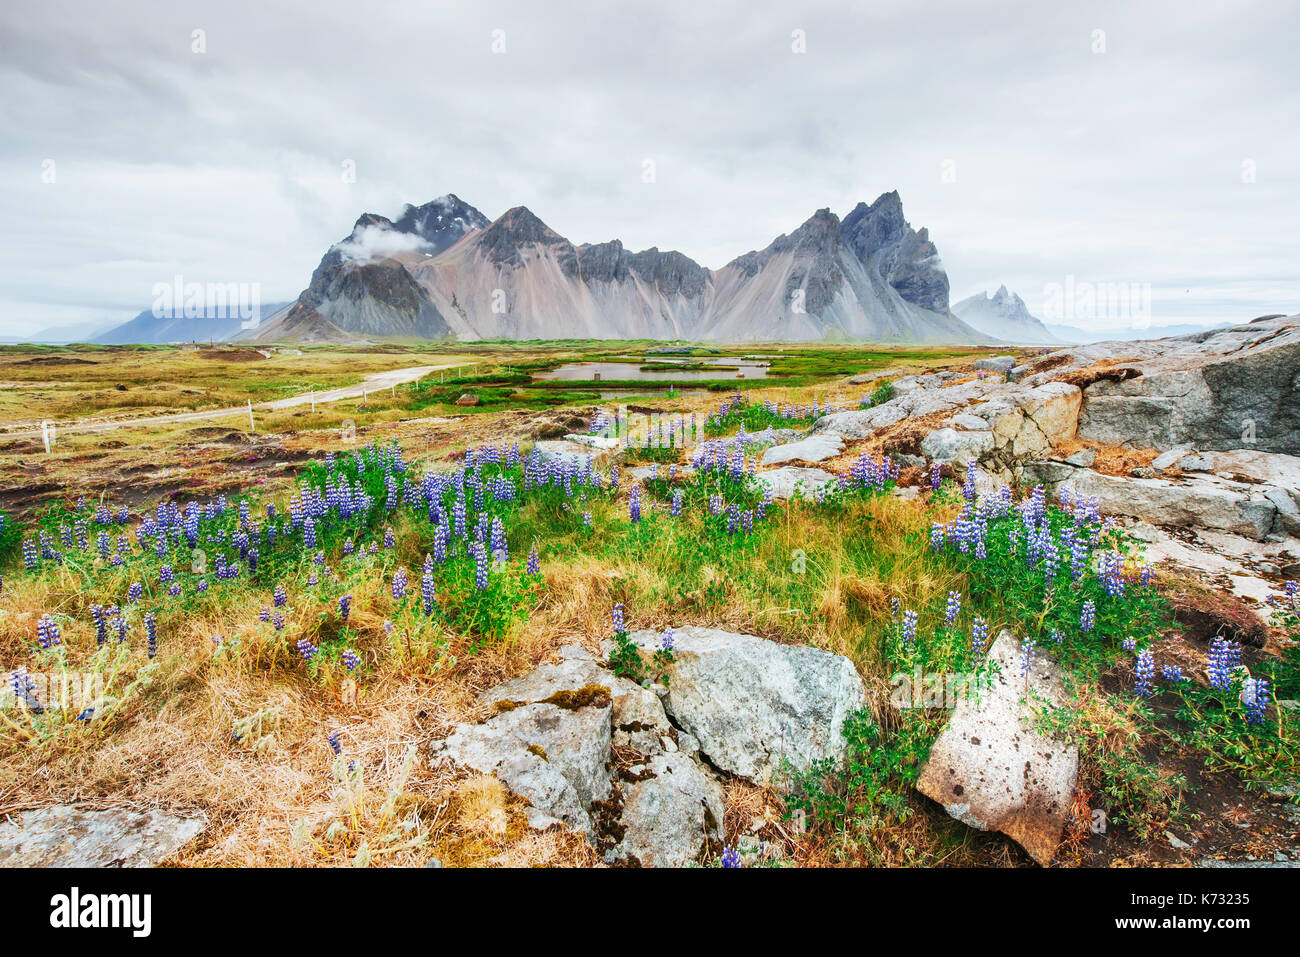 Gentle slopes of snow-capped mountains and glaciers. Wonderful Iceland in the spring. - Stock Image